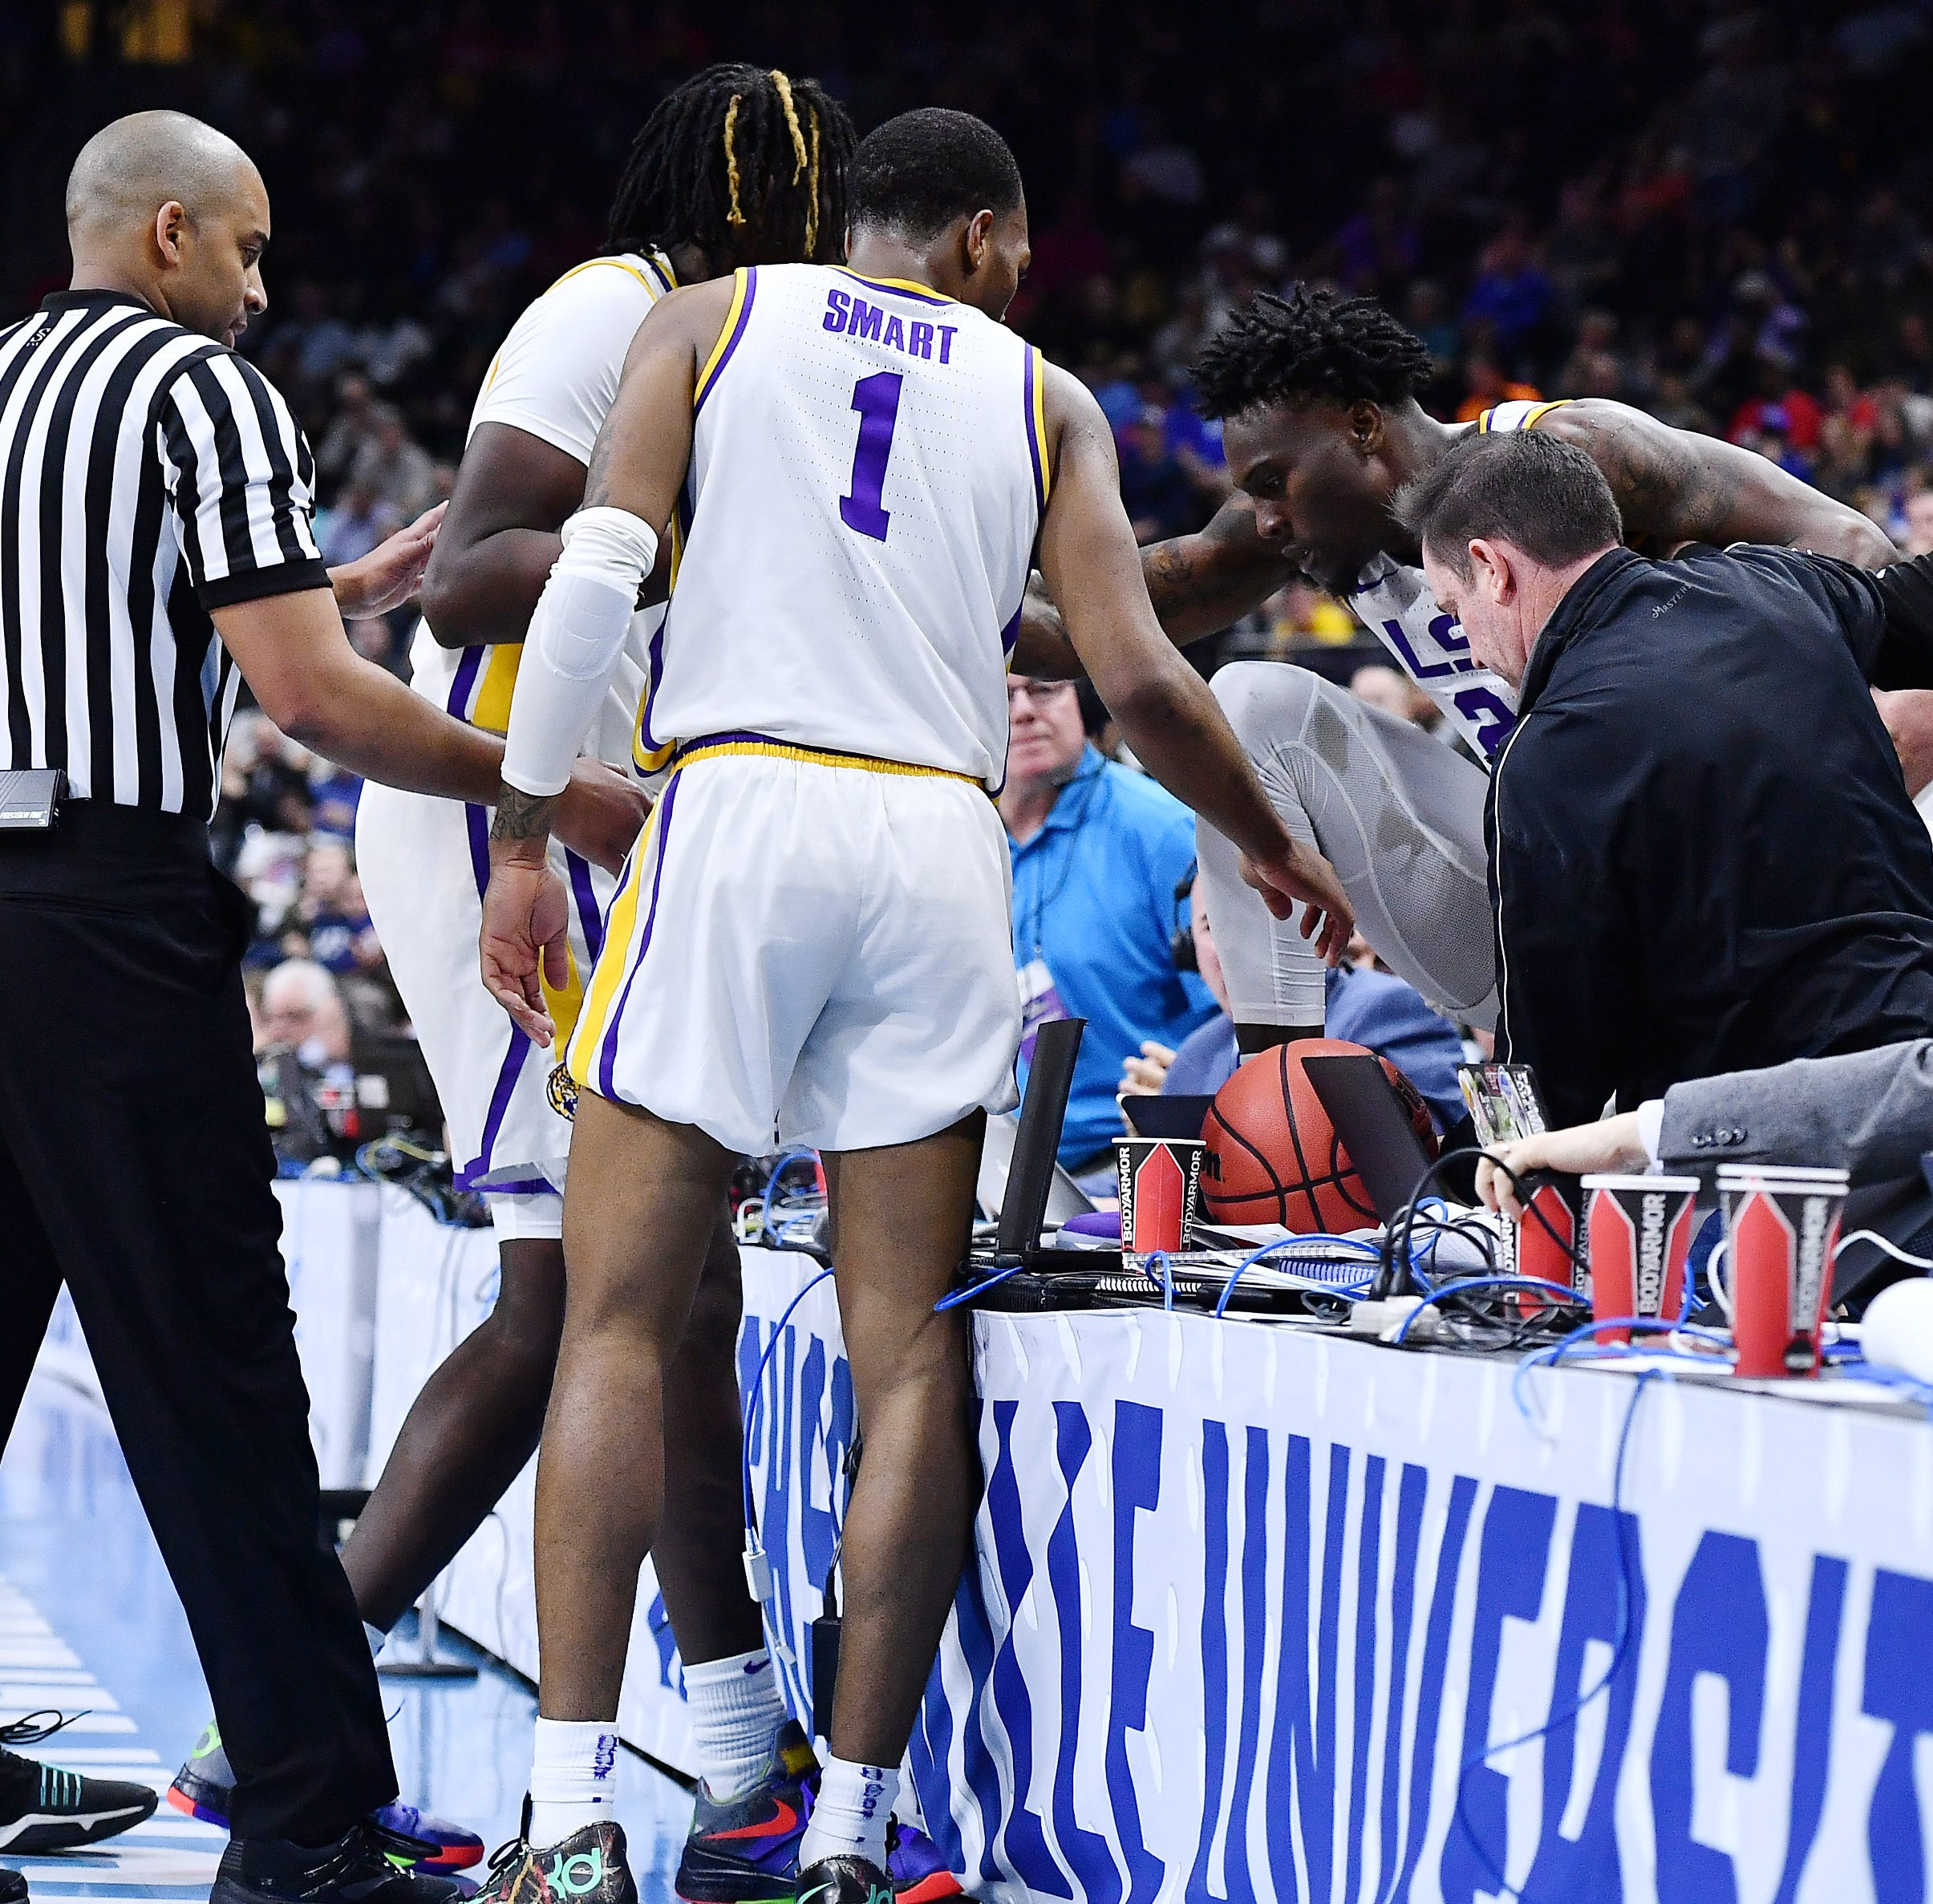 'I was trying to hit the brakes,' said LSU's Williams, who failed and landed on press row